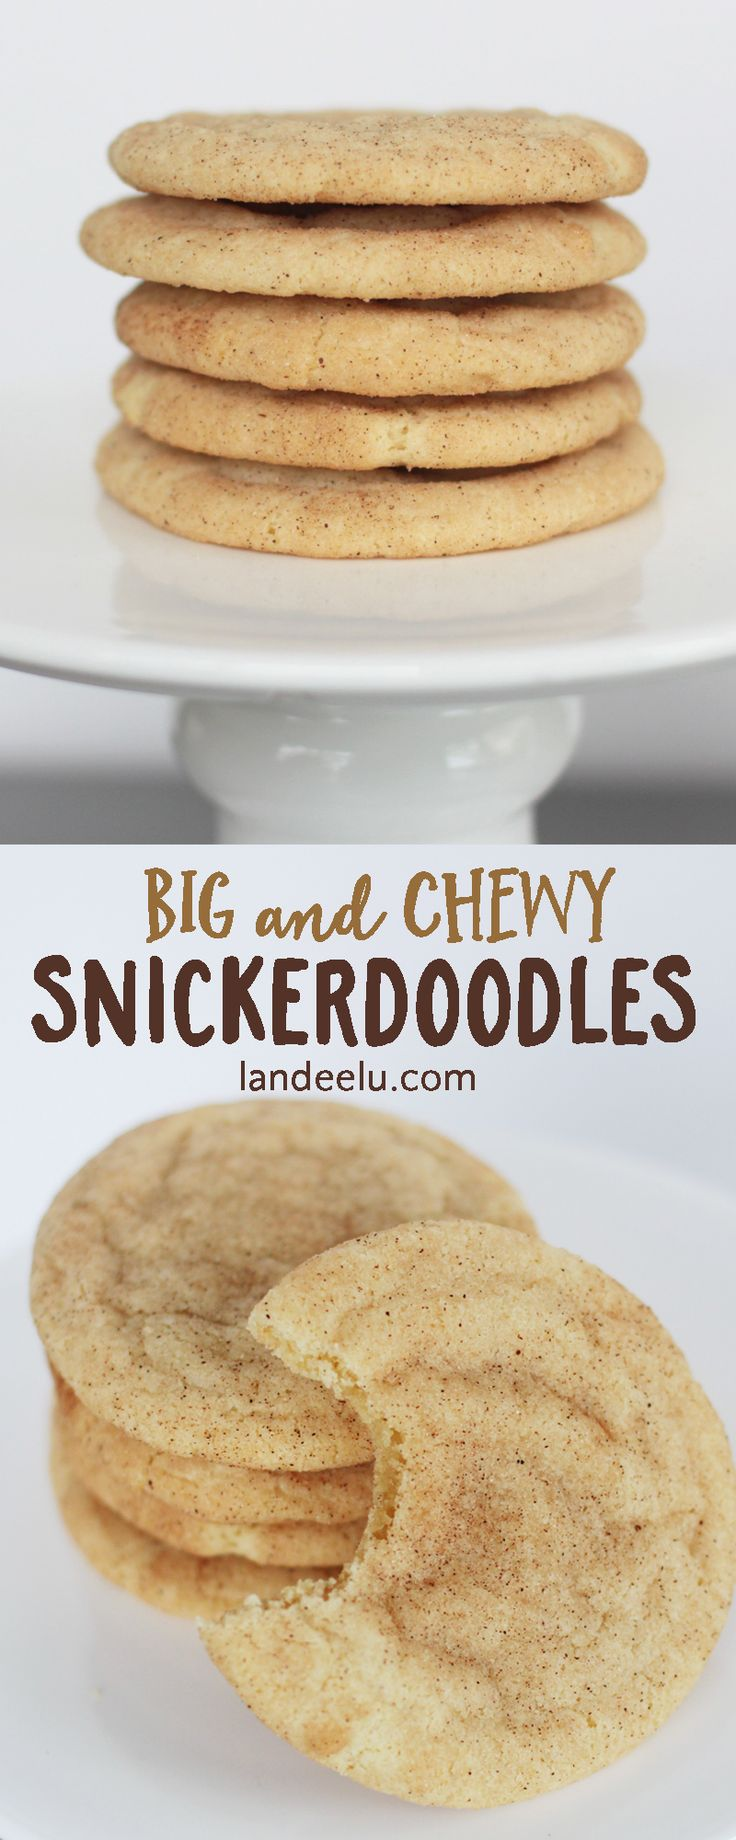 This is the snickerdoodle recipe you've been looking for! Try these and you'll be in snickerdoodle HEAVEN.